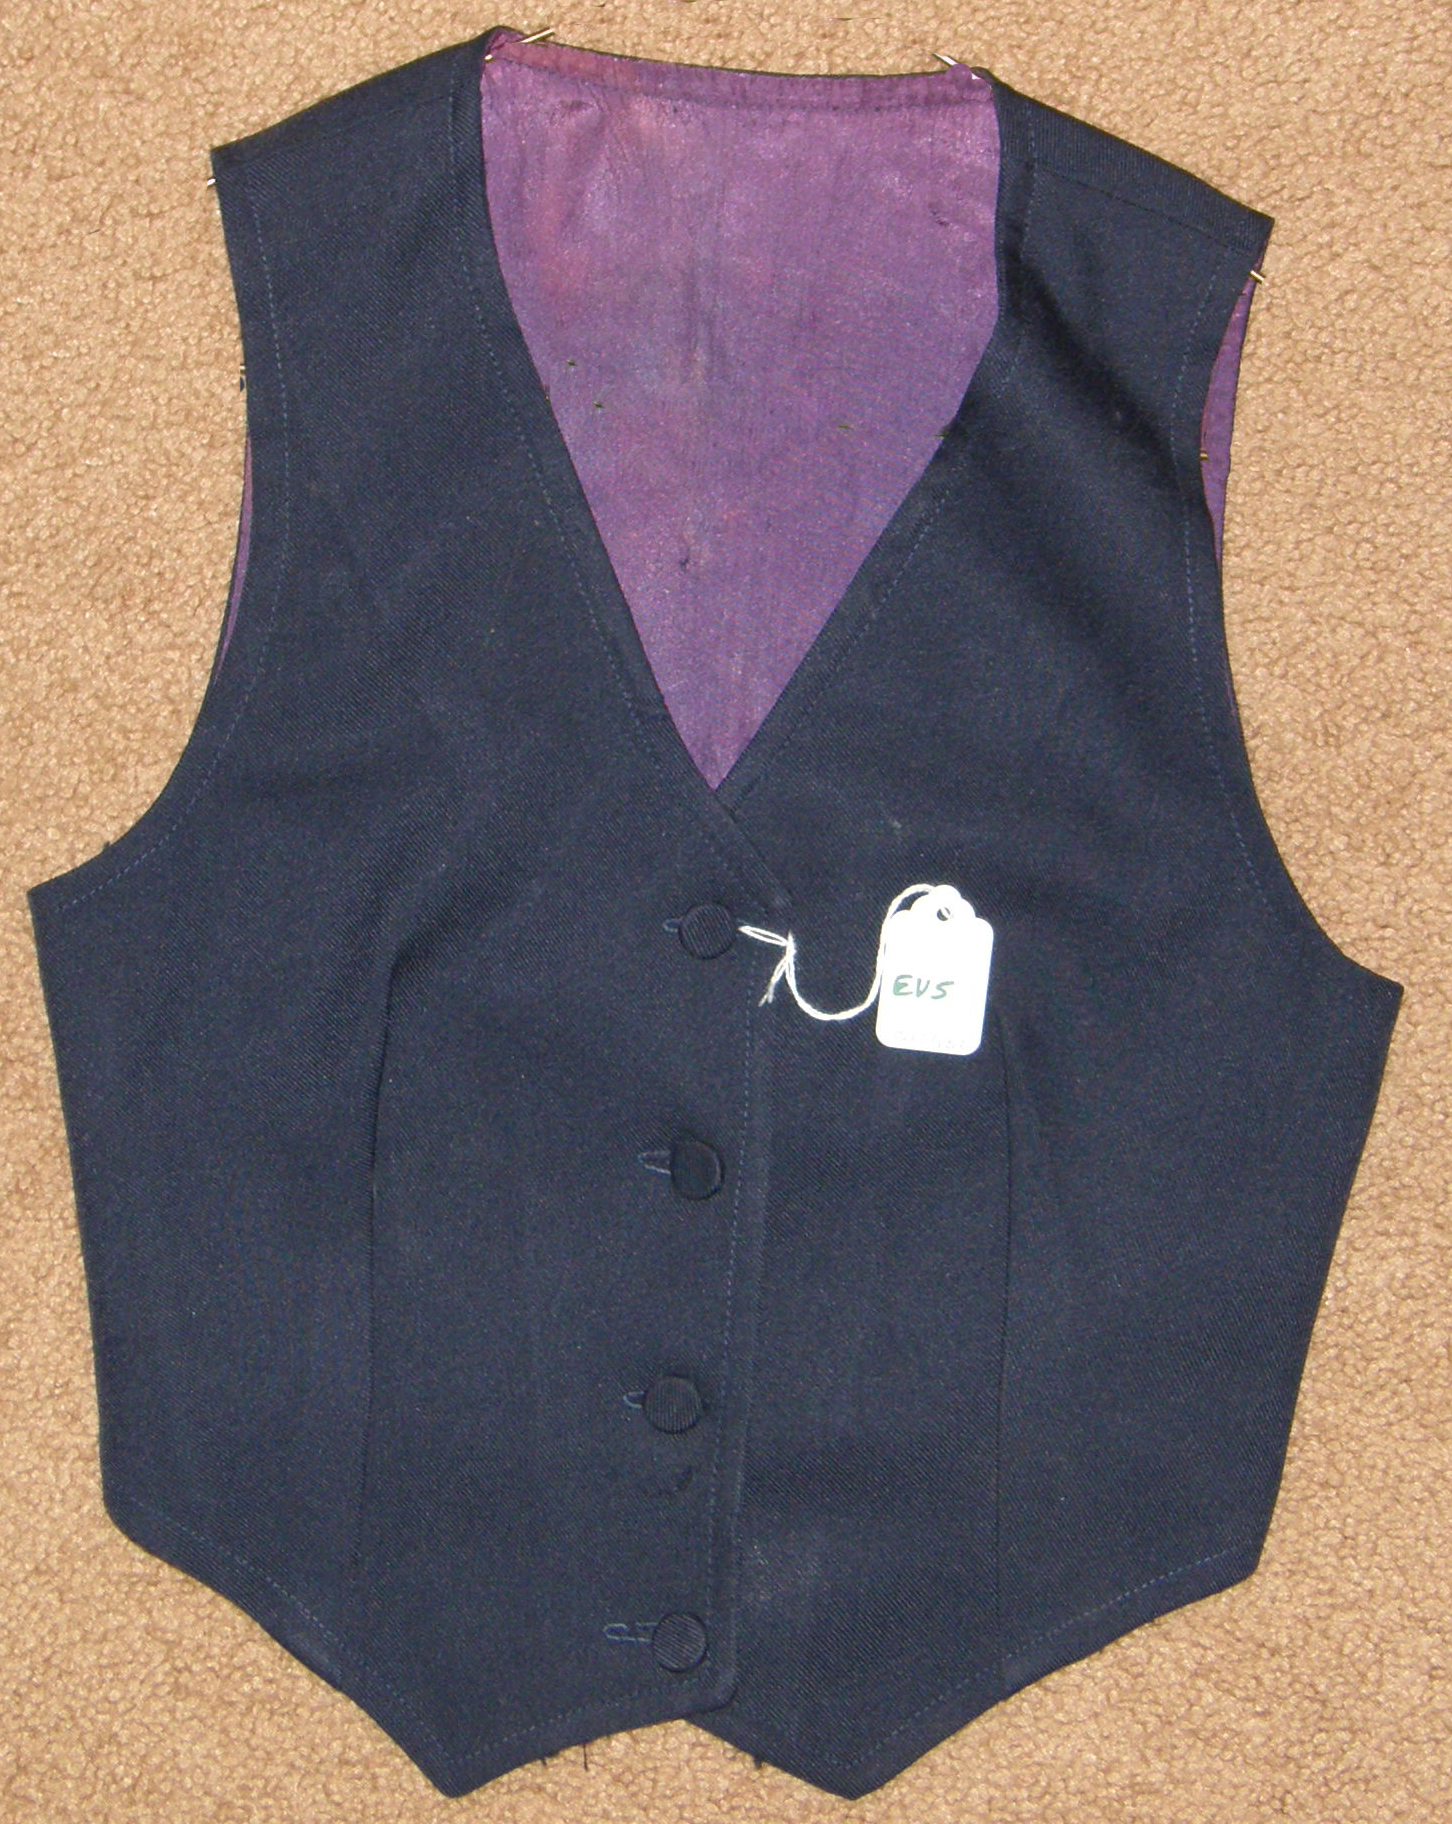 English Vest Saddleseat Suit Vest Navy Blue sz 8-10?